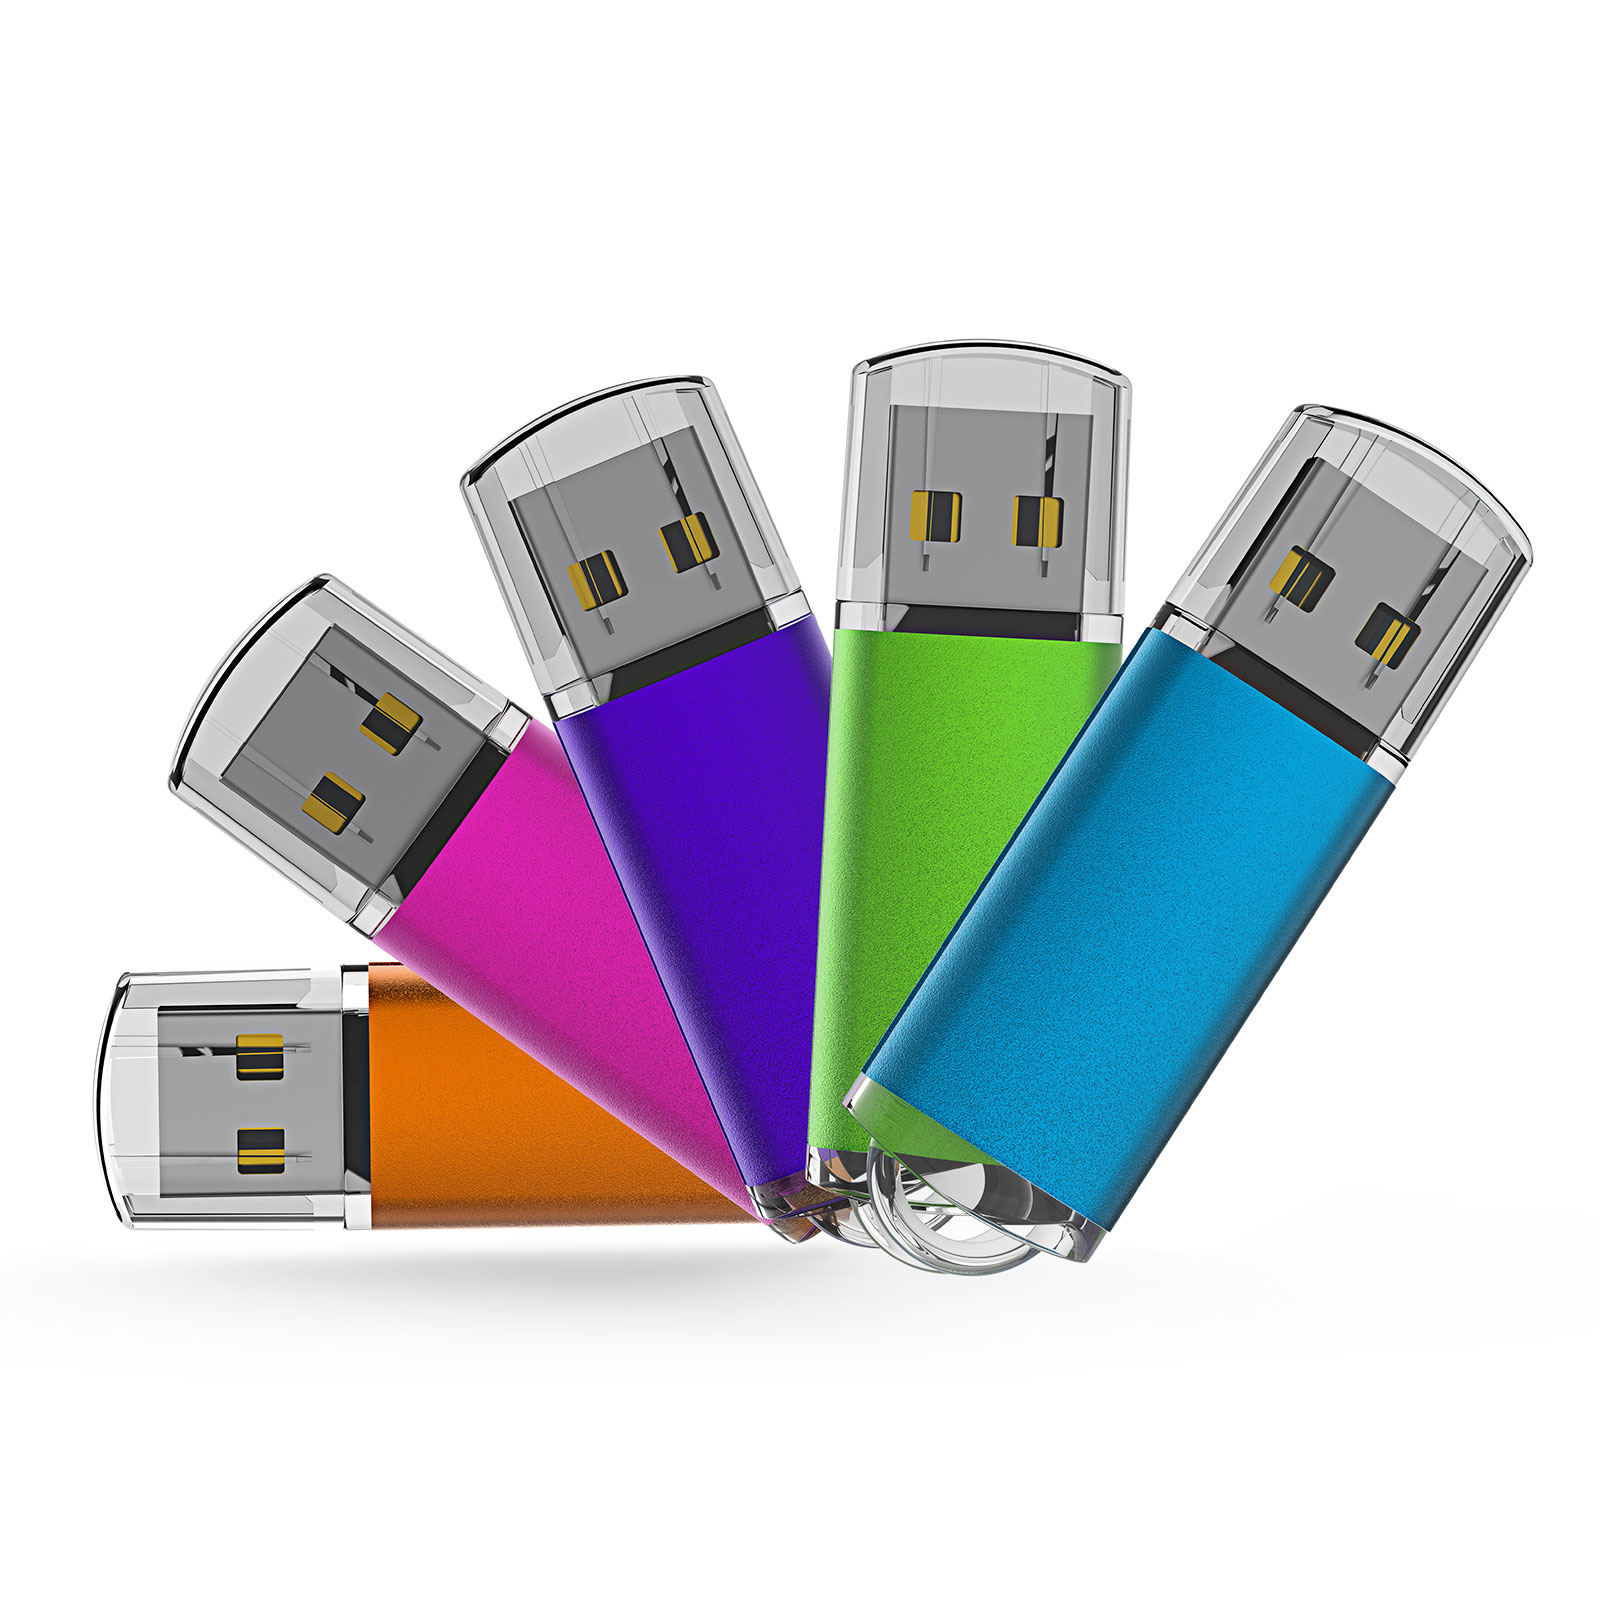 KOOTION 5 Pack 4GB USB 2.0 Flash Drive Thumb Drives Memory Stick, 5 Mixed Colors: Blue, Purple, Pink, Green, Orange